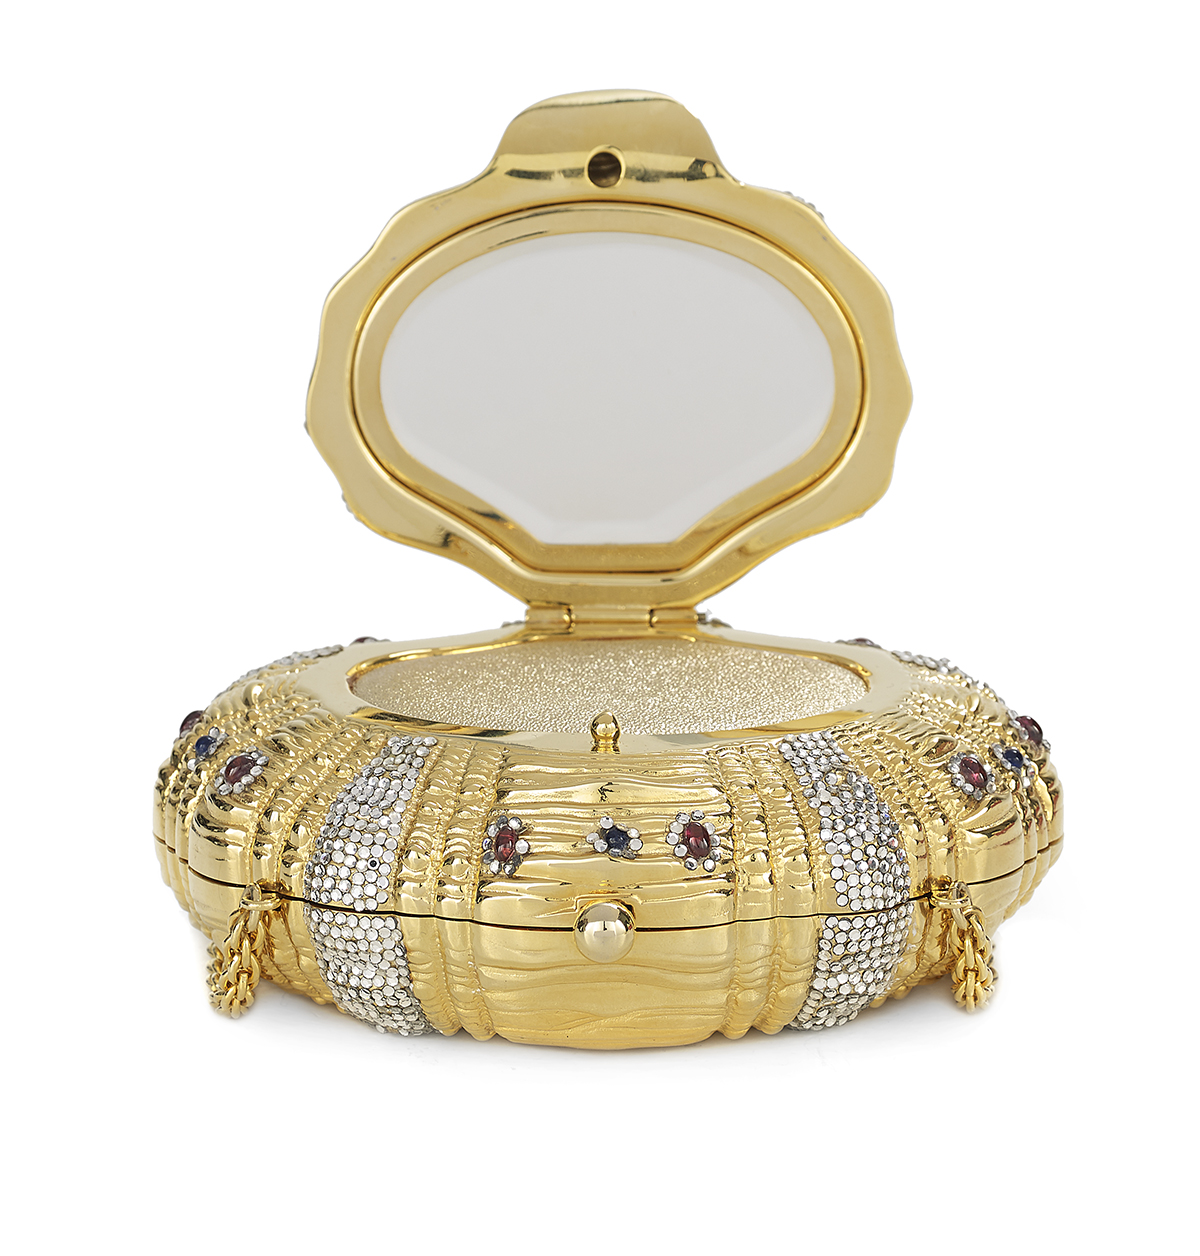 Lot 596 - Vintage Judith Leiber Jeweled Minaudiere